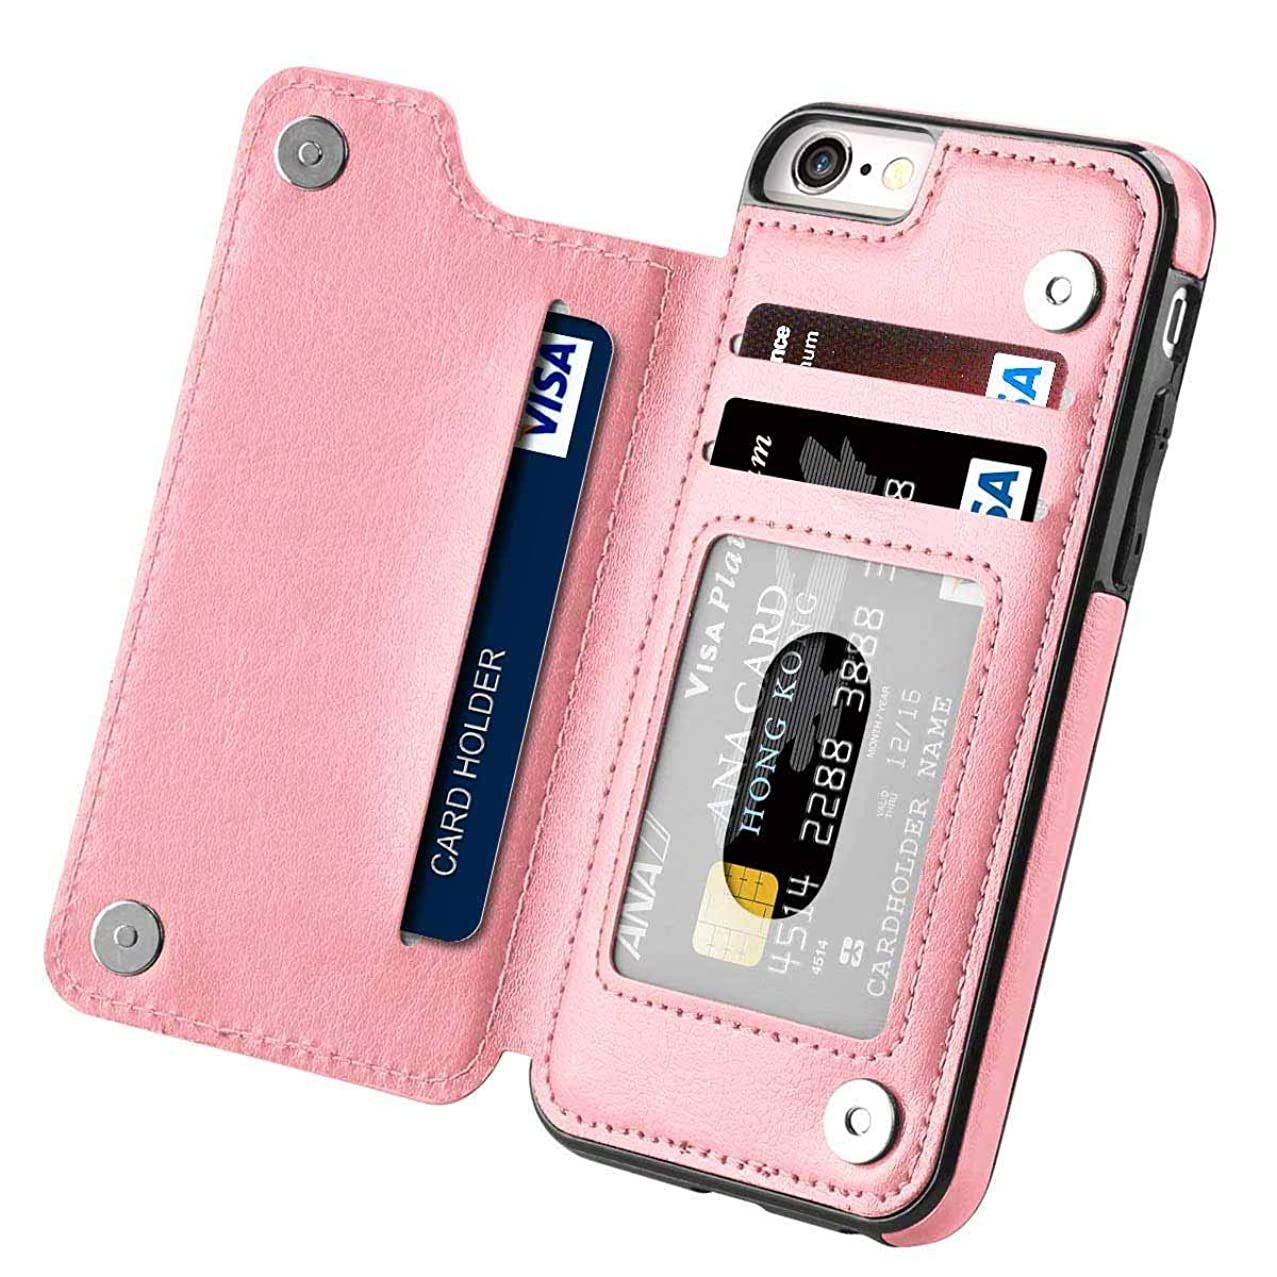 iPhone 7 Wallet Case with Card Holder,iPhone 7 8 Case Wallet for Men Women,Aprilday Compatible iPhone 7 8 Premium Leather Case Slim Fit Kickstand Card Slots Durable Shockproof Case Cover (Rosegold)